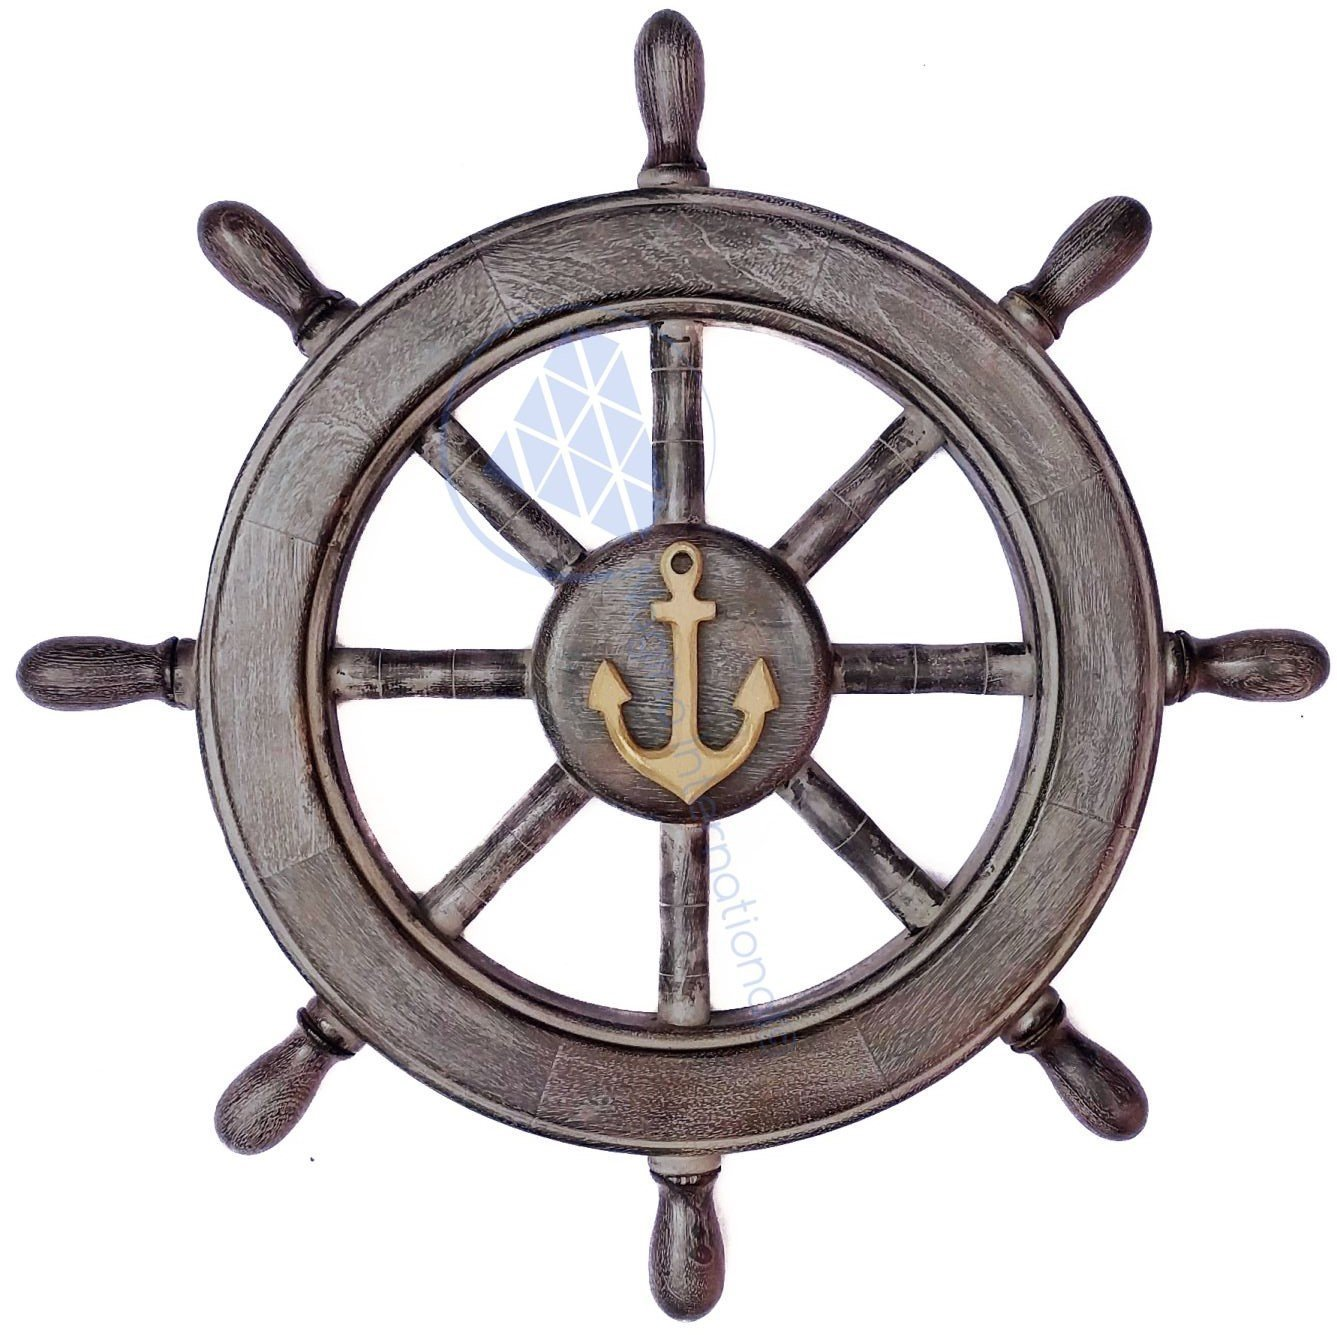 Frosty Antique Junkyard Crafted Wooden Ship Wheel | Anchor Motiff | Pirate's Home Wall Decor | Nagina International (48 Inches)